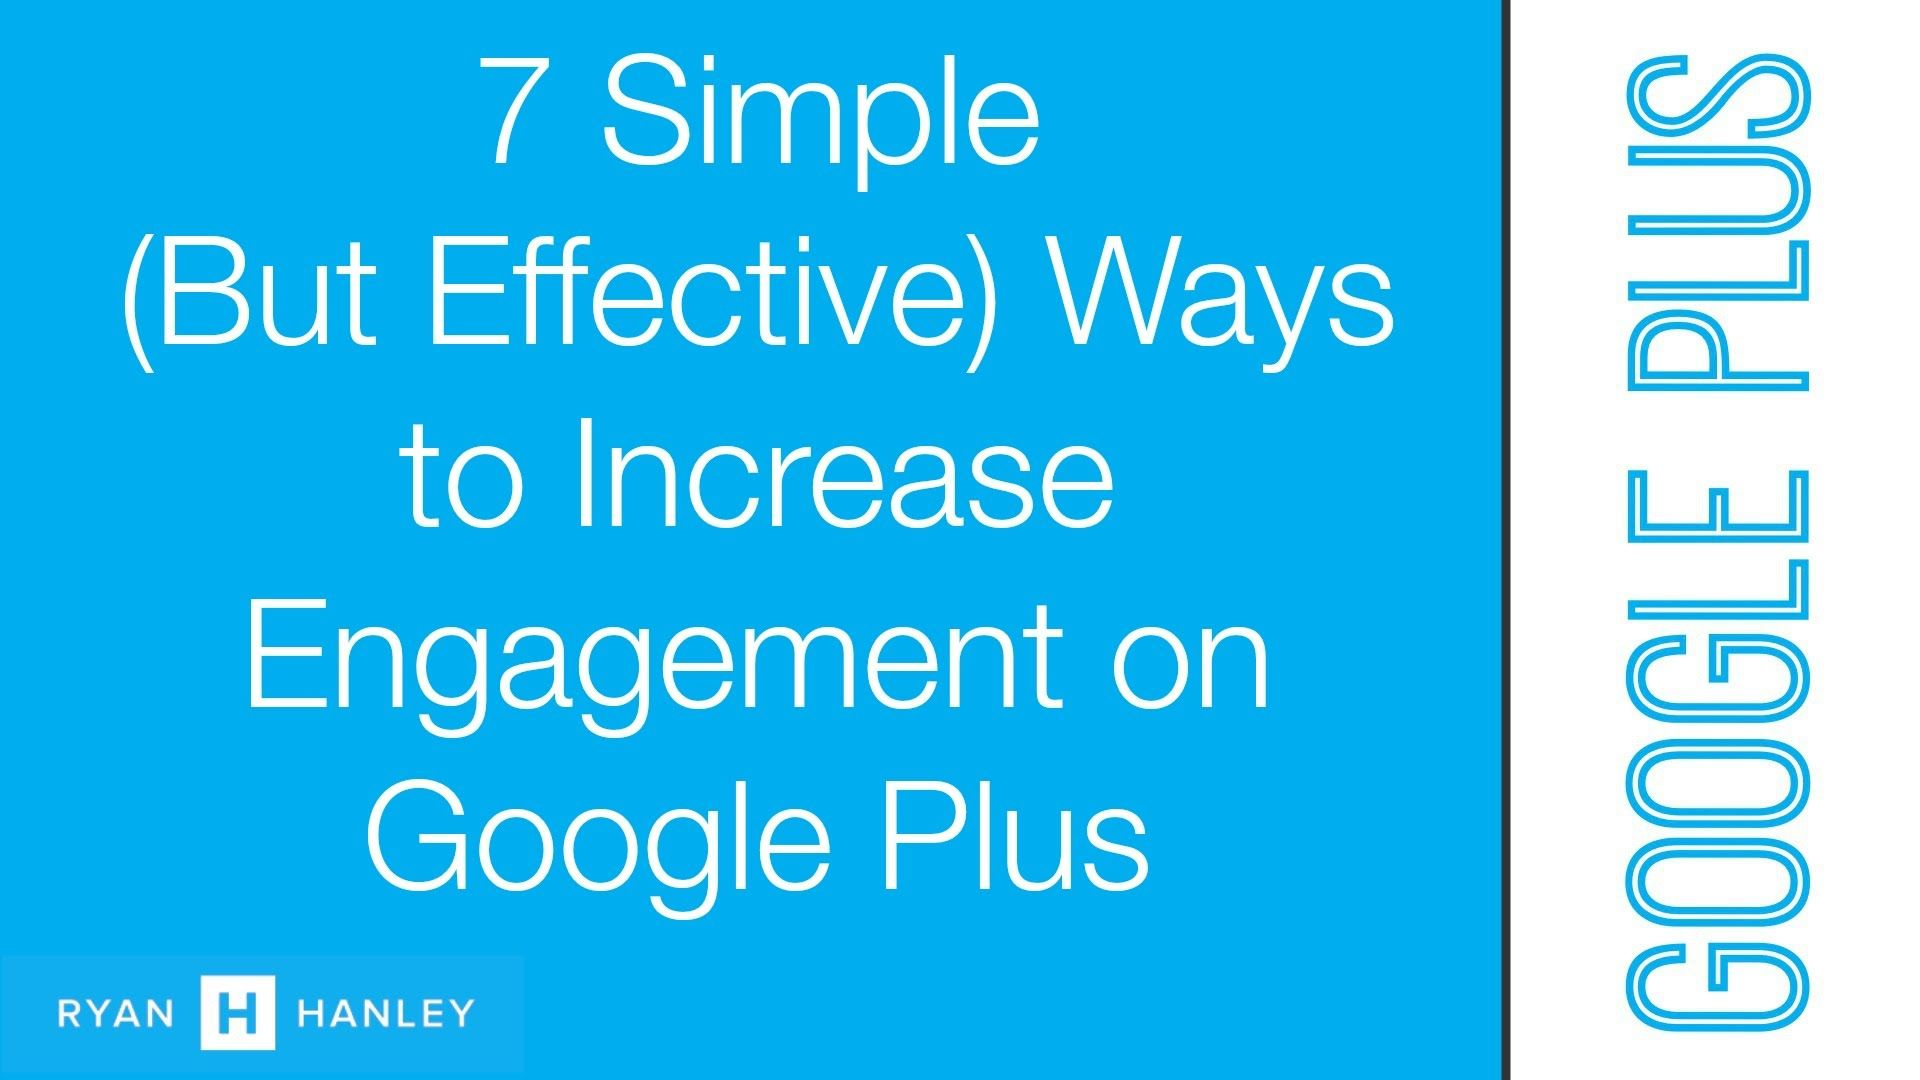 7 Simple (But Effective) Ways to Increase Engagement on Google Plus